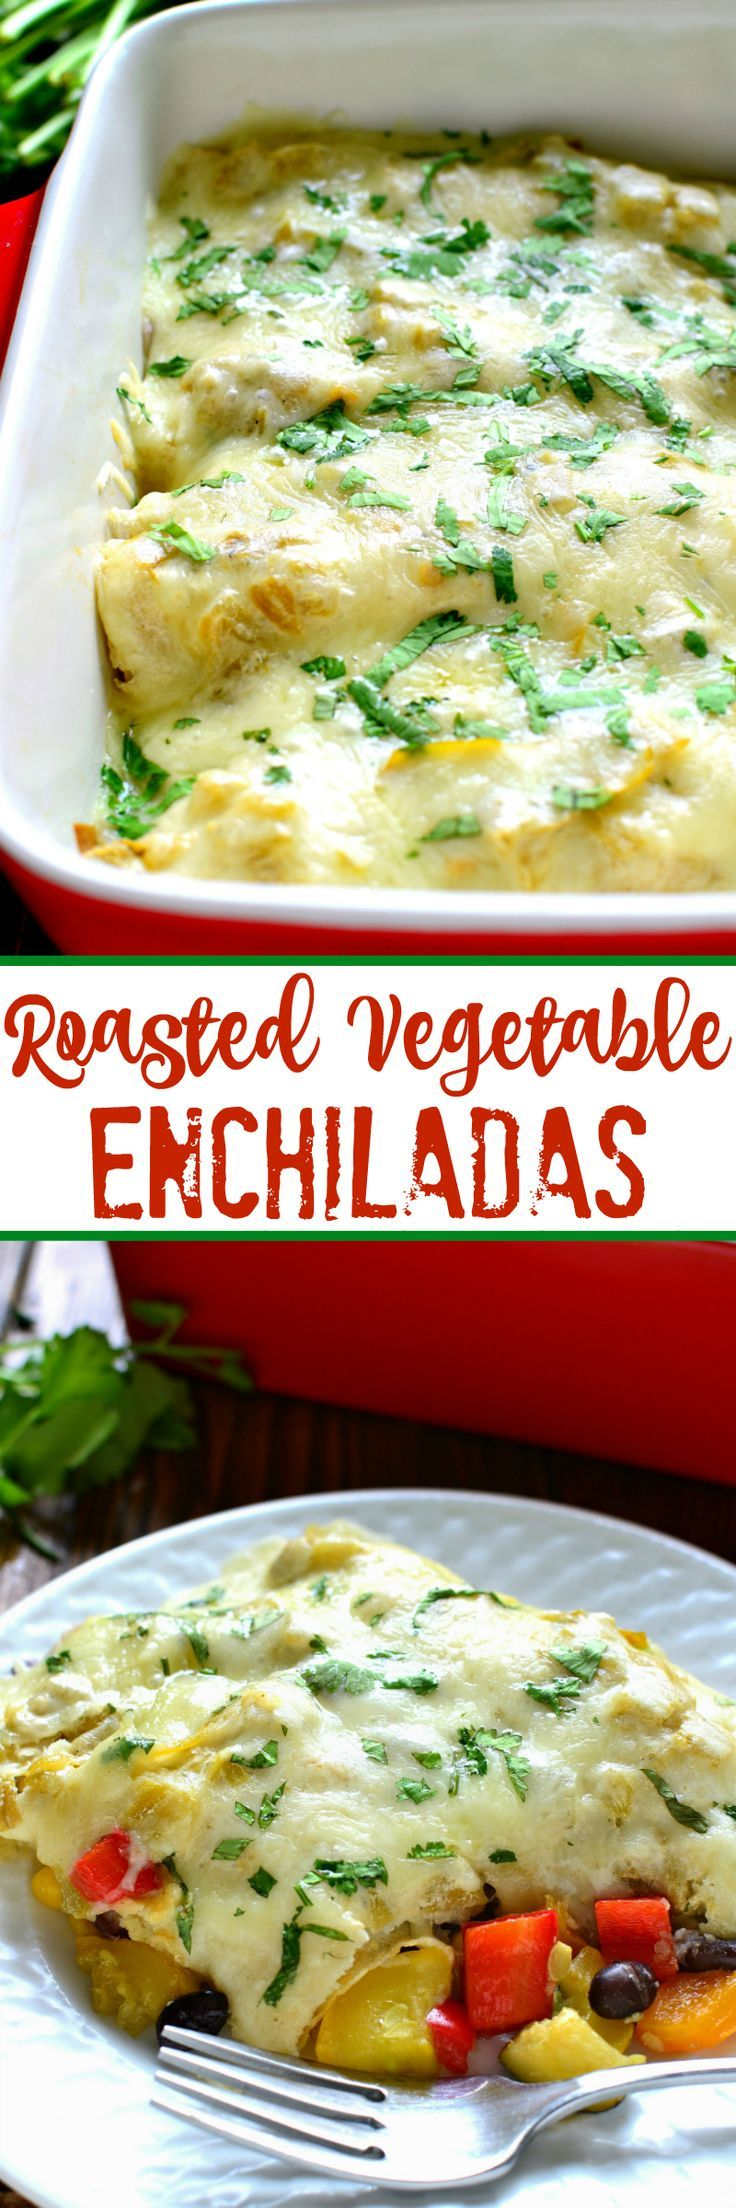 These Roasted Vegetable Enchiladas are packed with fresh veggies, corn, and black beans, then topped with a creamy chile verde sauce and melted Monterey Jack cheese. The perfect option for a healthy, flavor packed, meatless dinner!: